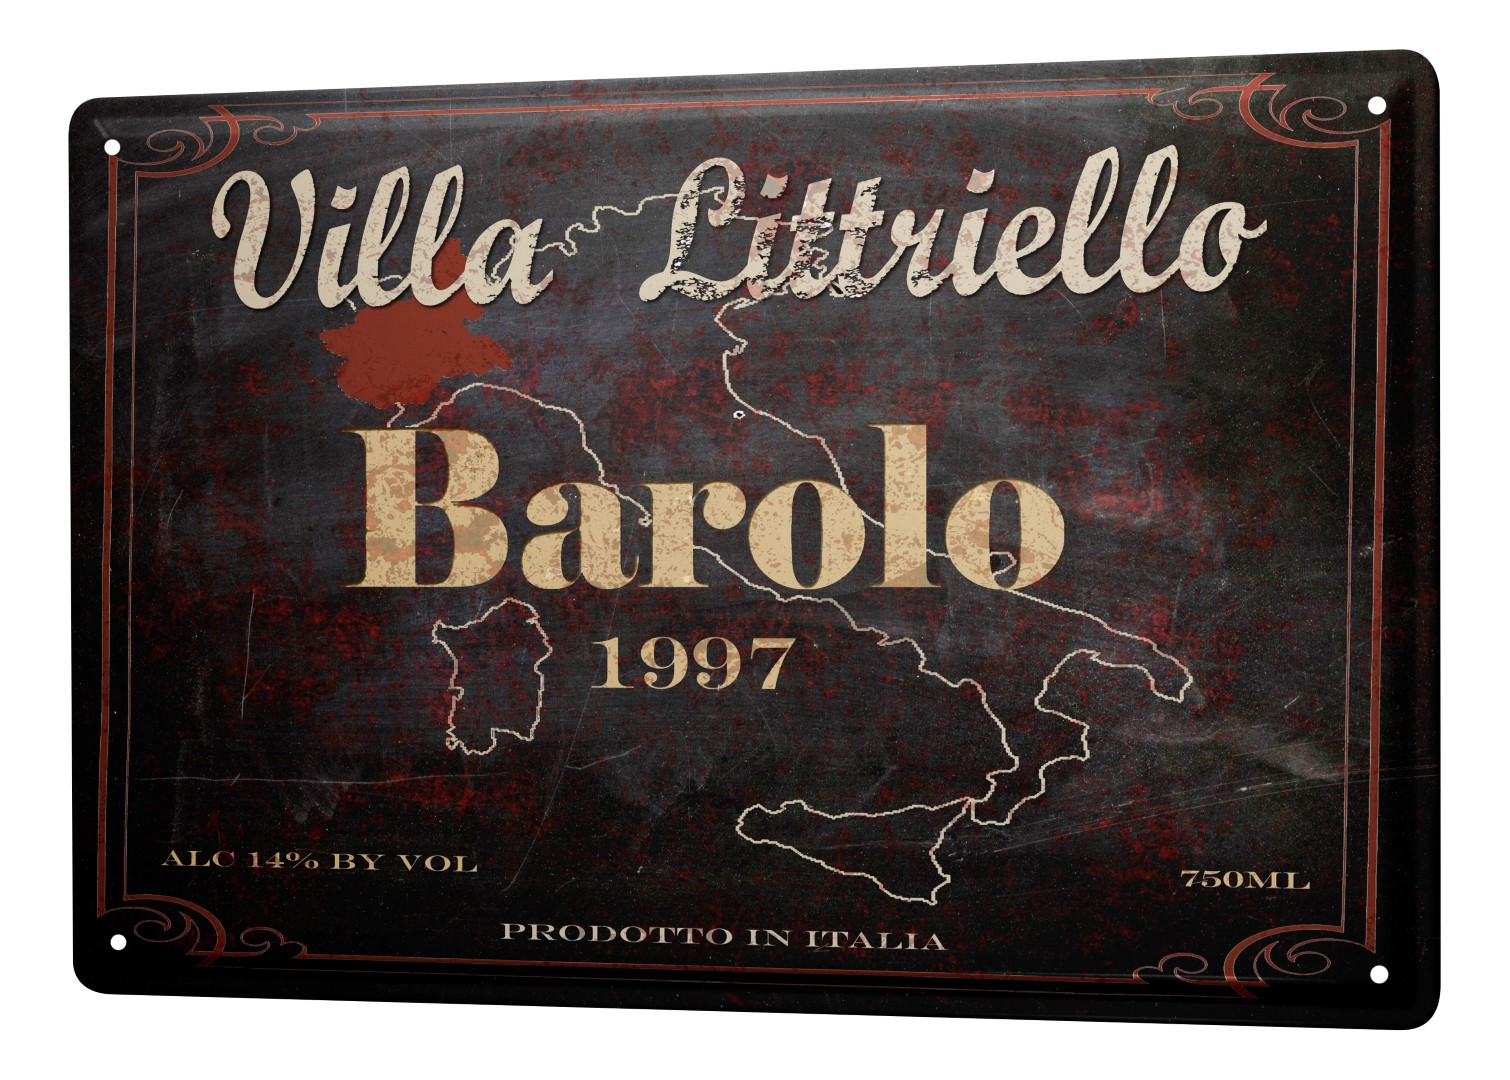 plaque maill e m tal affiche affiches vin rouge italie cuisine d coration. Black Bedroom Furniture Sets. Home Design Ideas